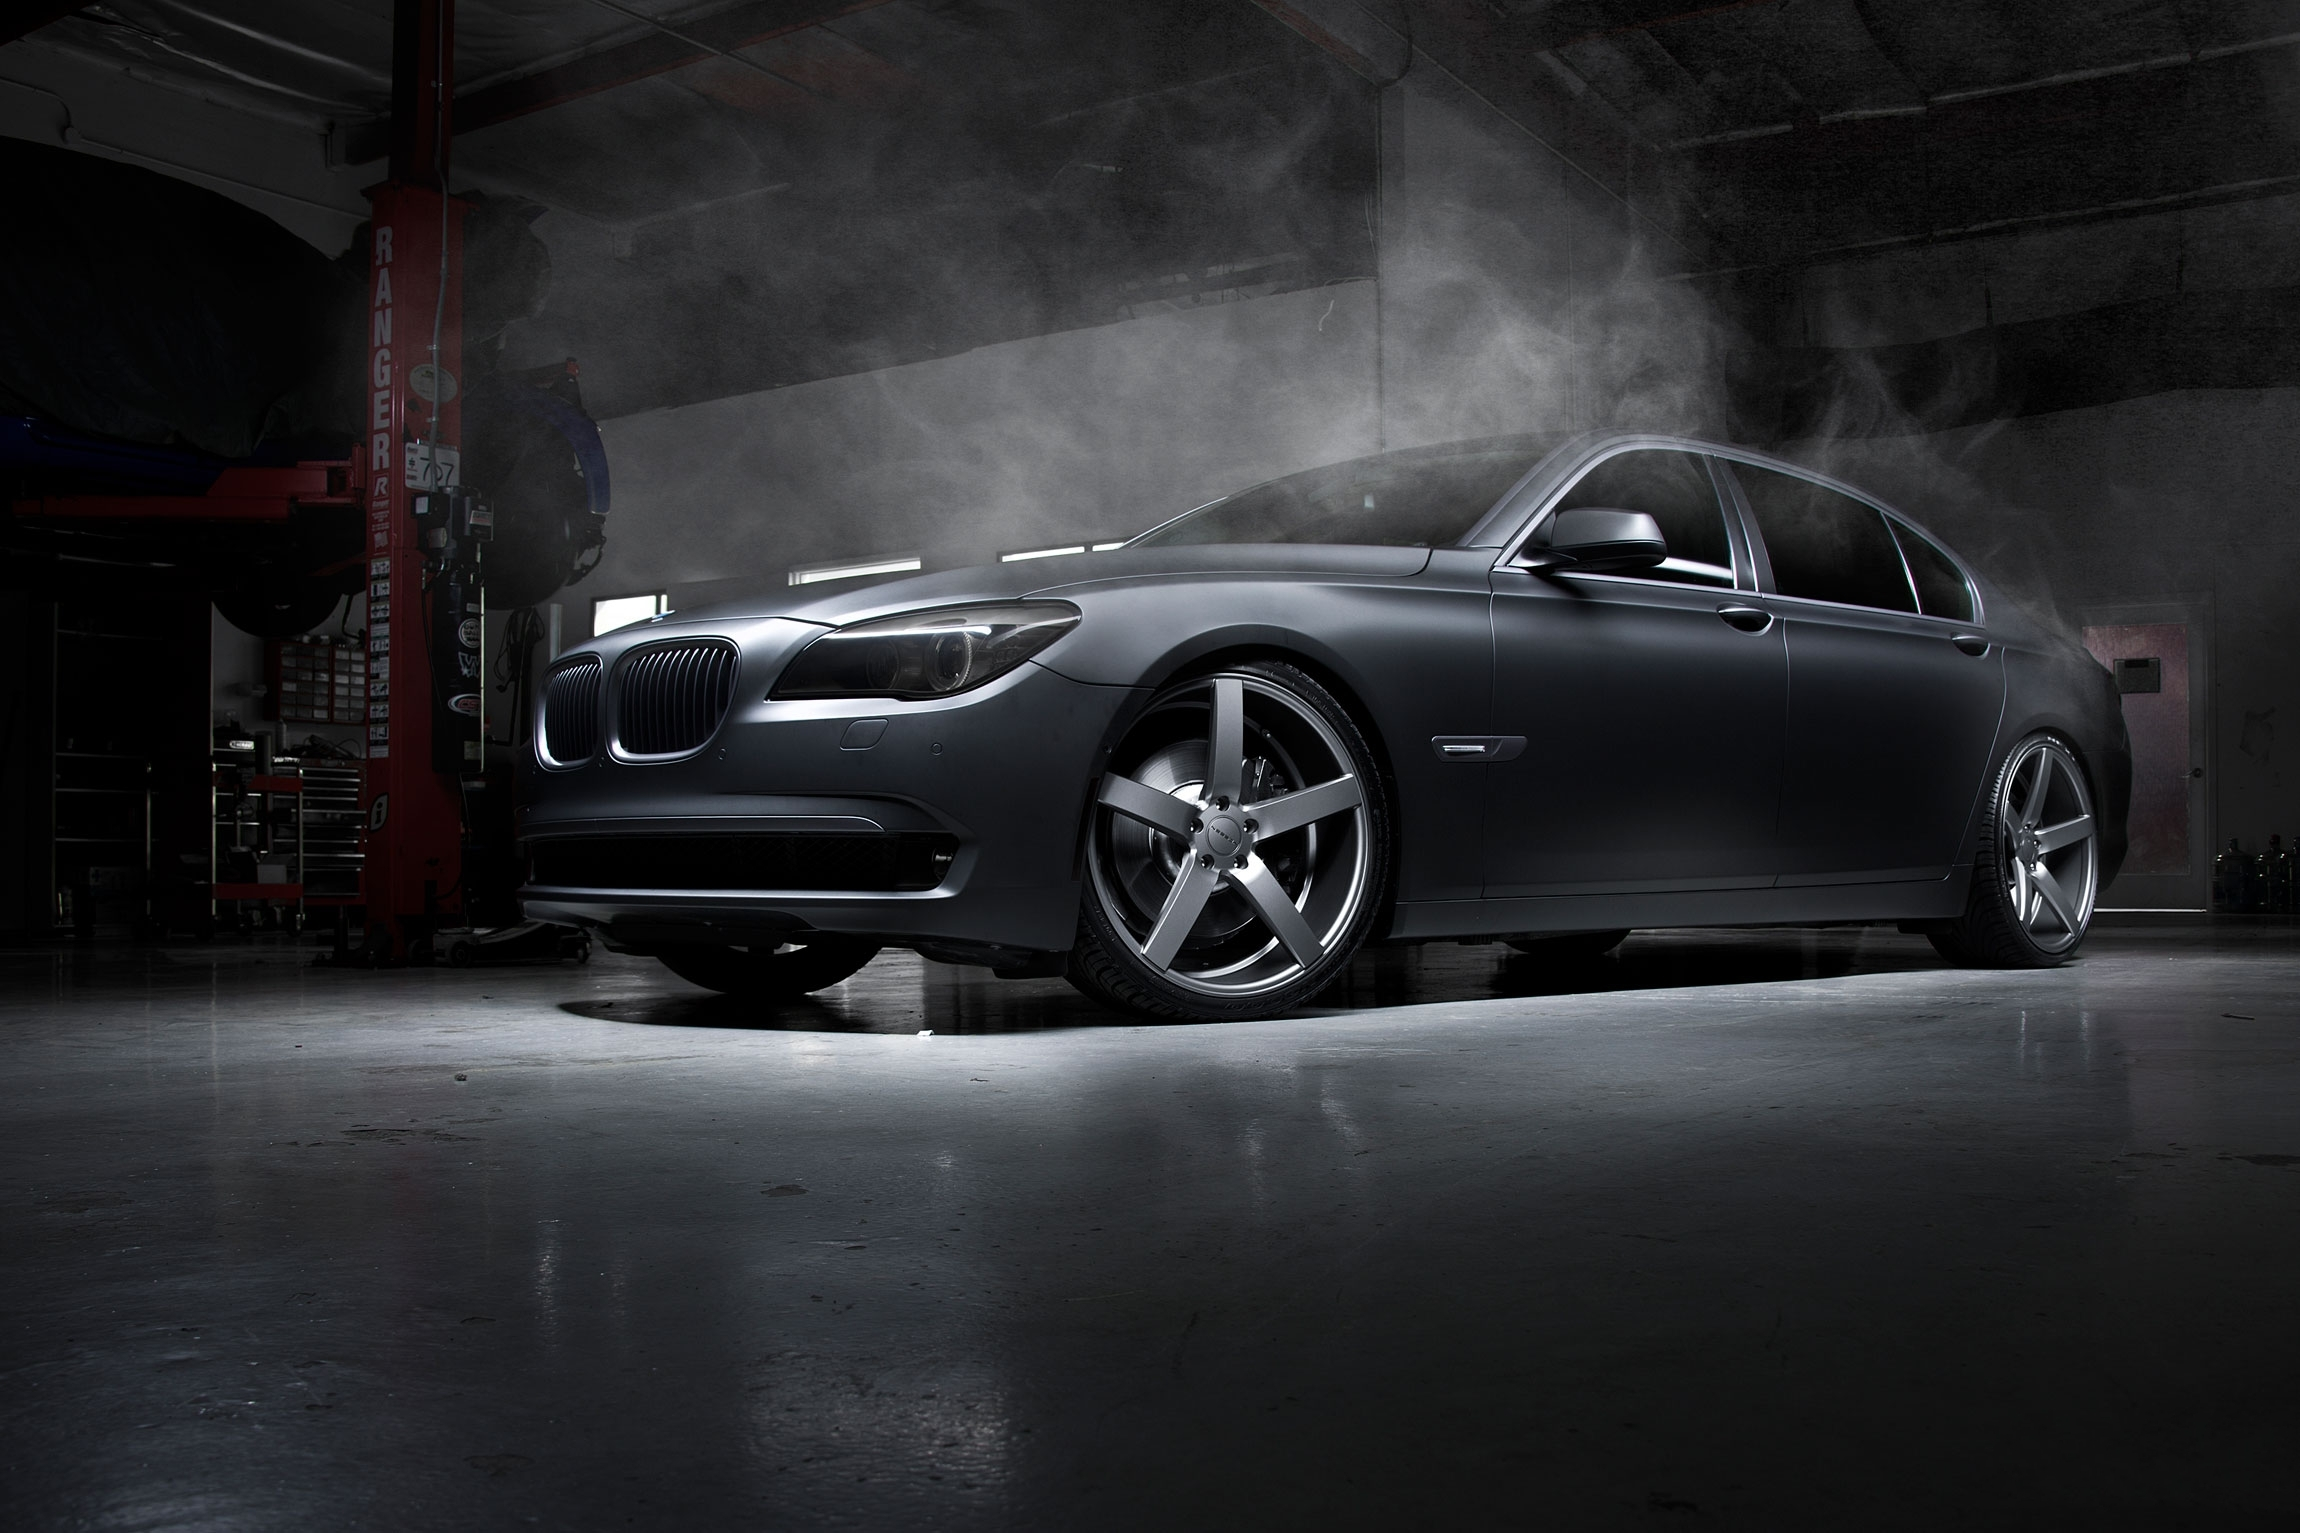 54533 download wallpaper Auto, Bmw, Smoke, Tuning, Cars, Disks, Drives, Garage screensavers and pictures for free